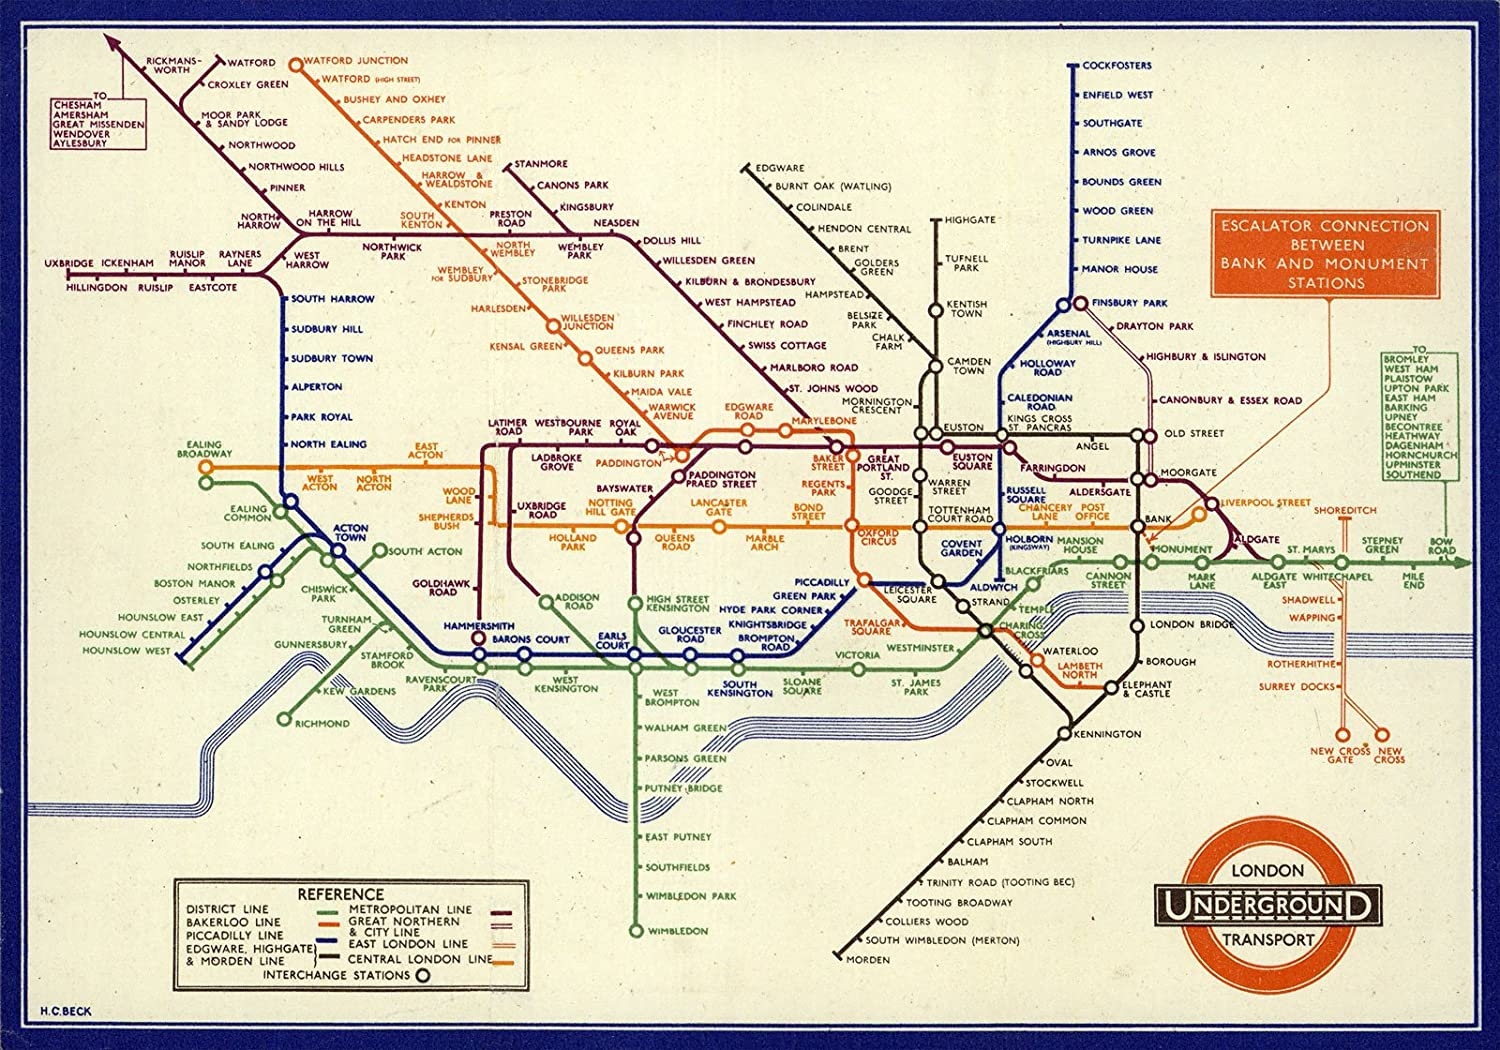 Subway Map Before 1933.1933 London Underground Map Metro Tube Historical Map Reprint 17 X